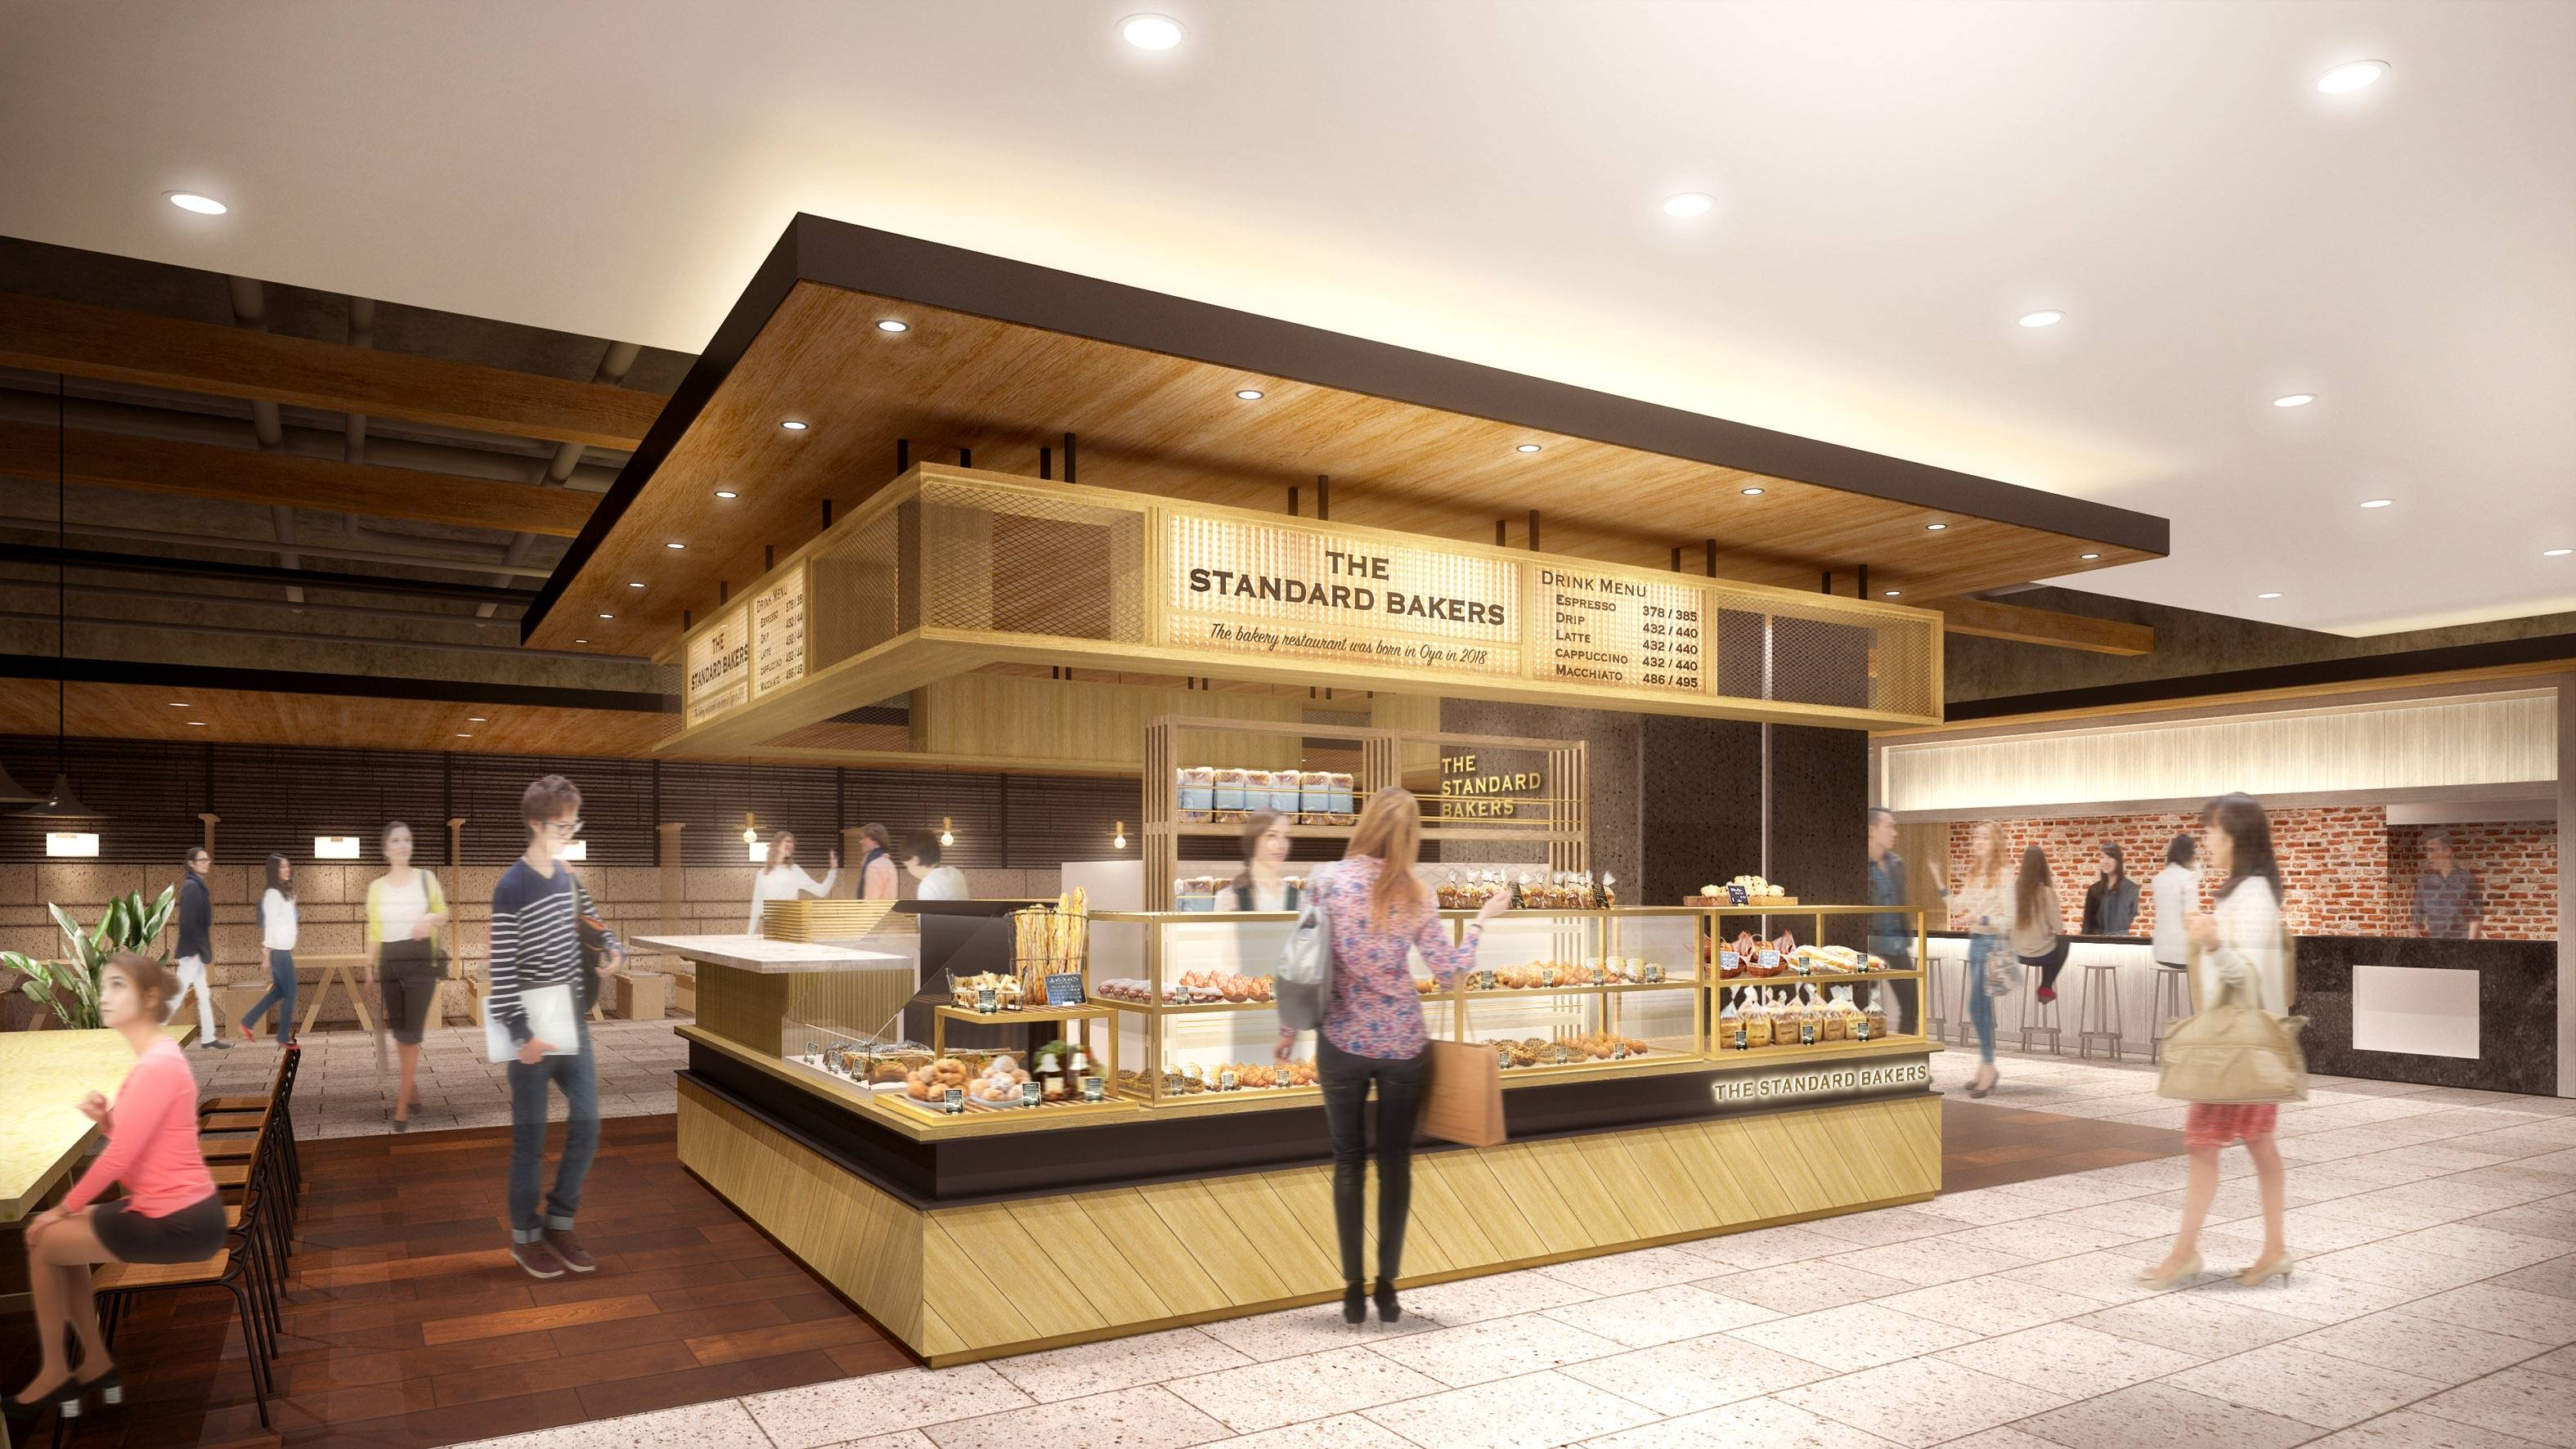 THE STANDARD BAKERS PASEO宇都宮店